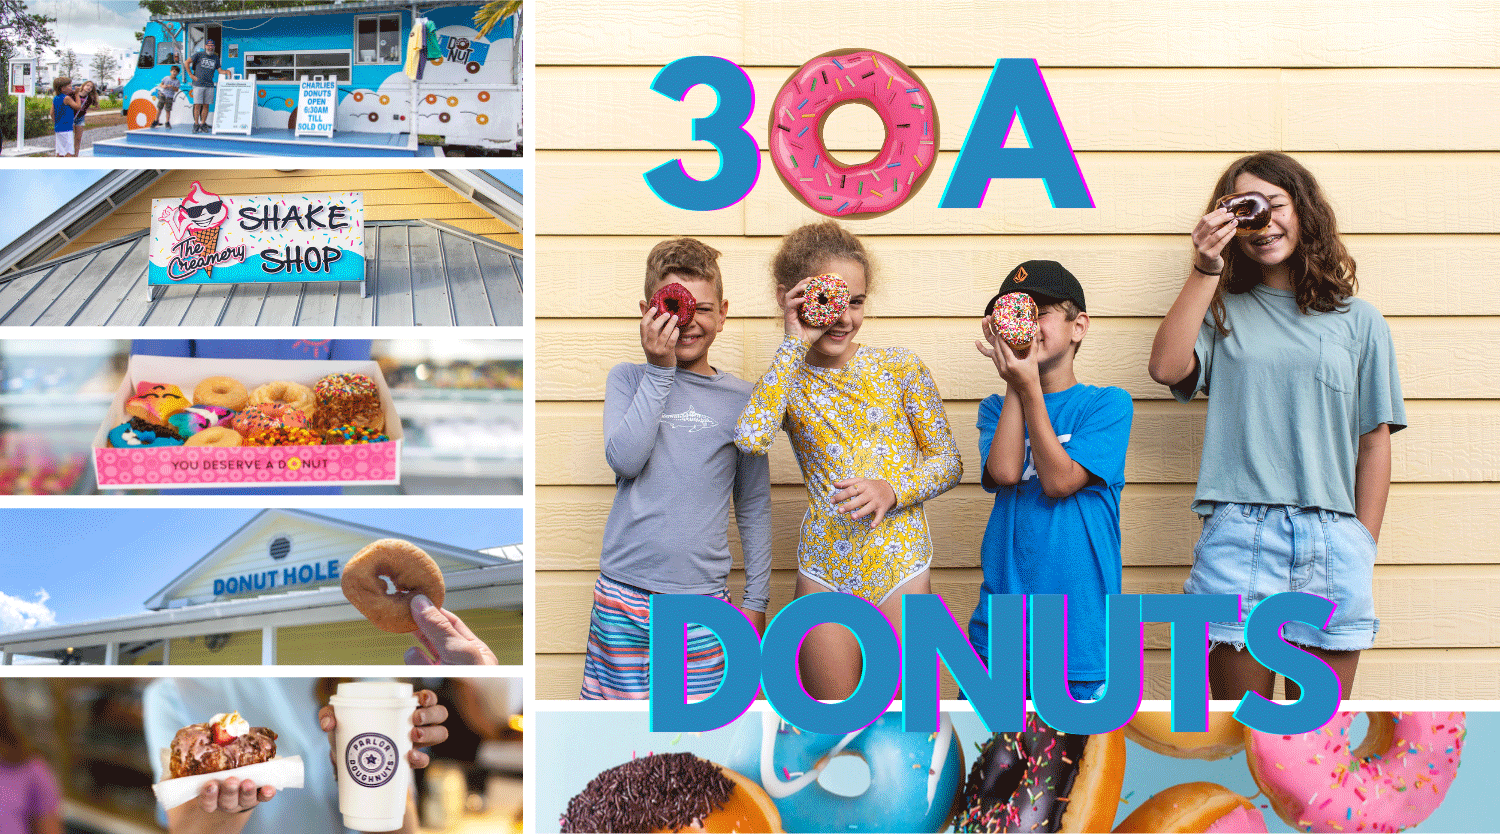 Best Donuts on 30A